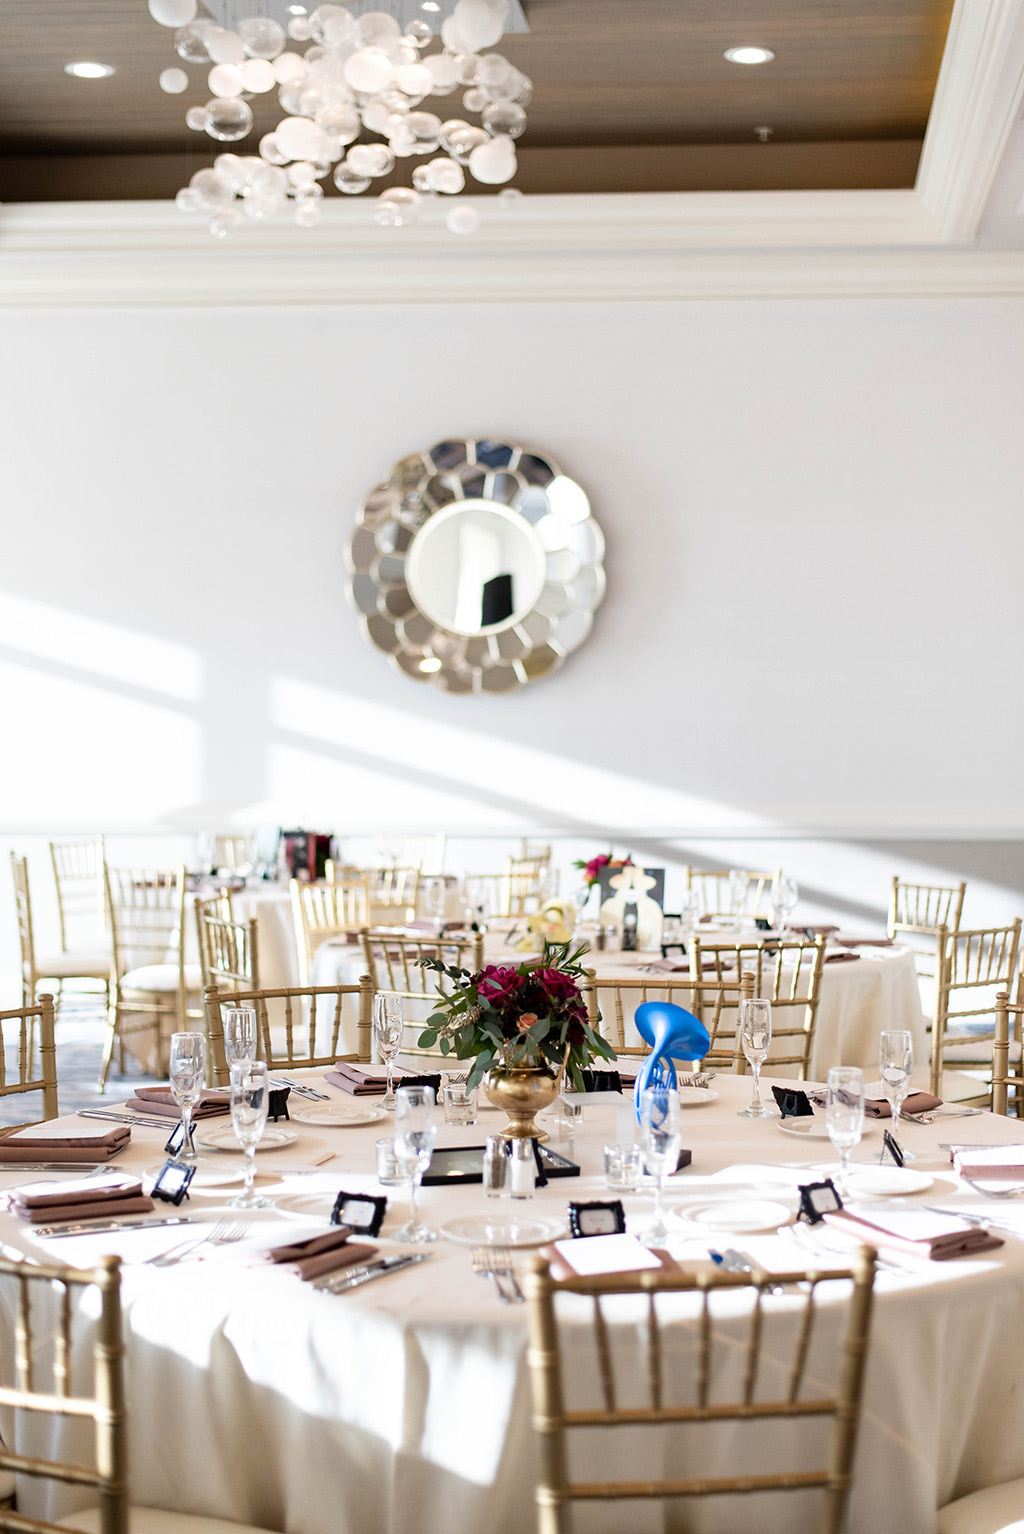 Classic Elegant Wedding Reception Decor, Round Tables with Champagne Linen, Gold Chiavari Chairs, Low Gold Vase with Red and Greenery Floral Centerpiece | Clearwater Beach Wedding Venue Hyatt Regency Clearwater Beach| Wedding Rentals Over the Top Rental Linens